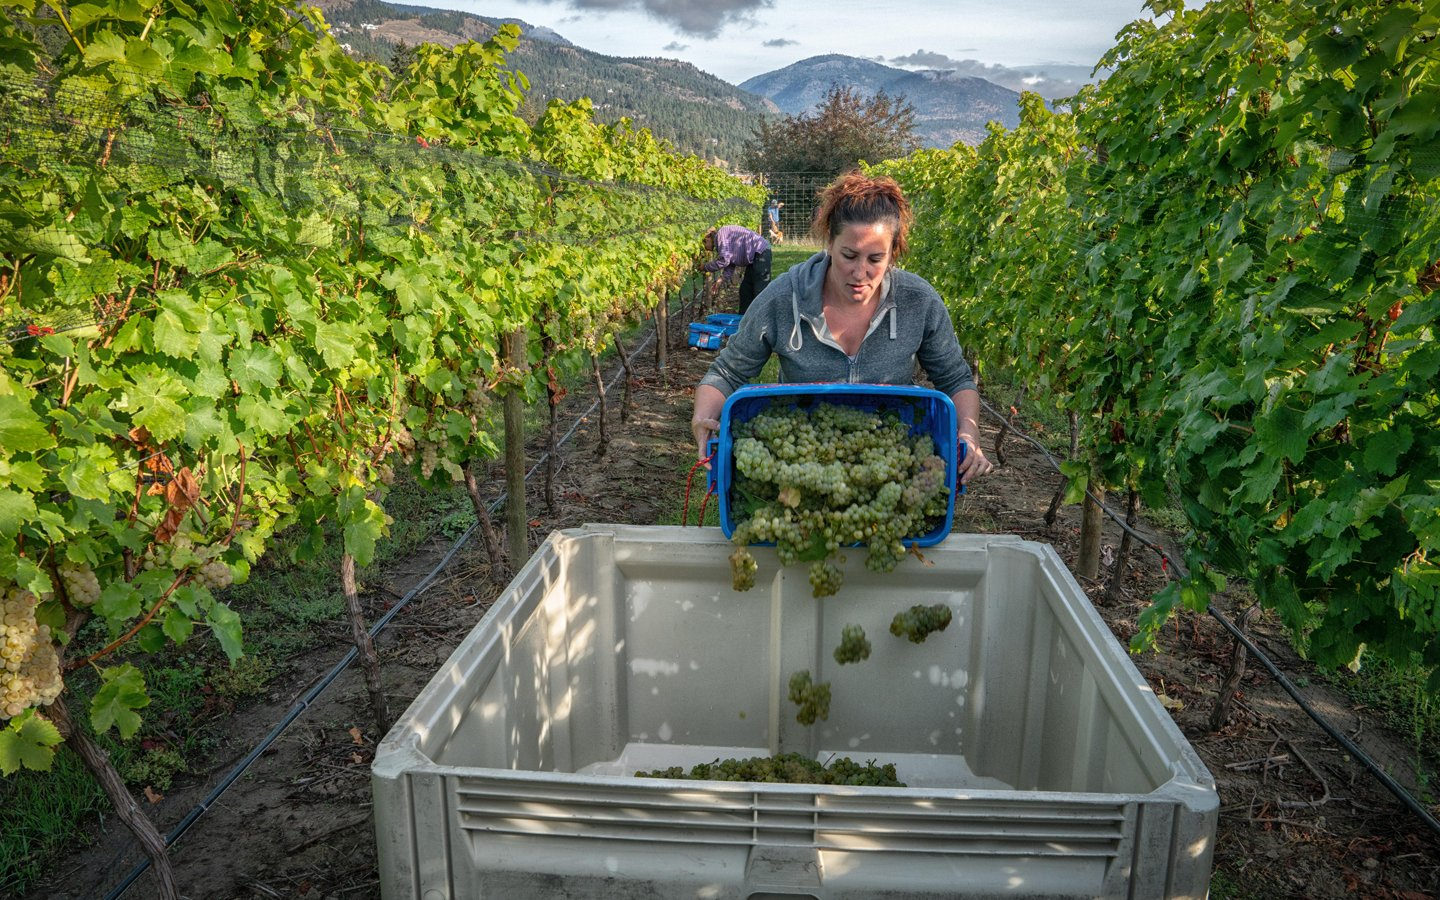 http://spatulamedia.ca/wp-content/uploads/2019/05/Indigenous-World-Winery-picking.jpg